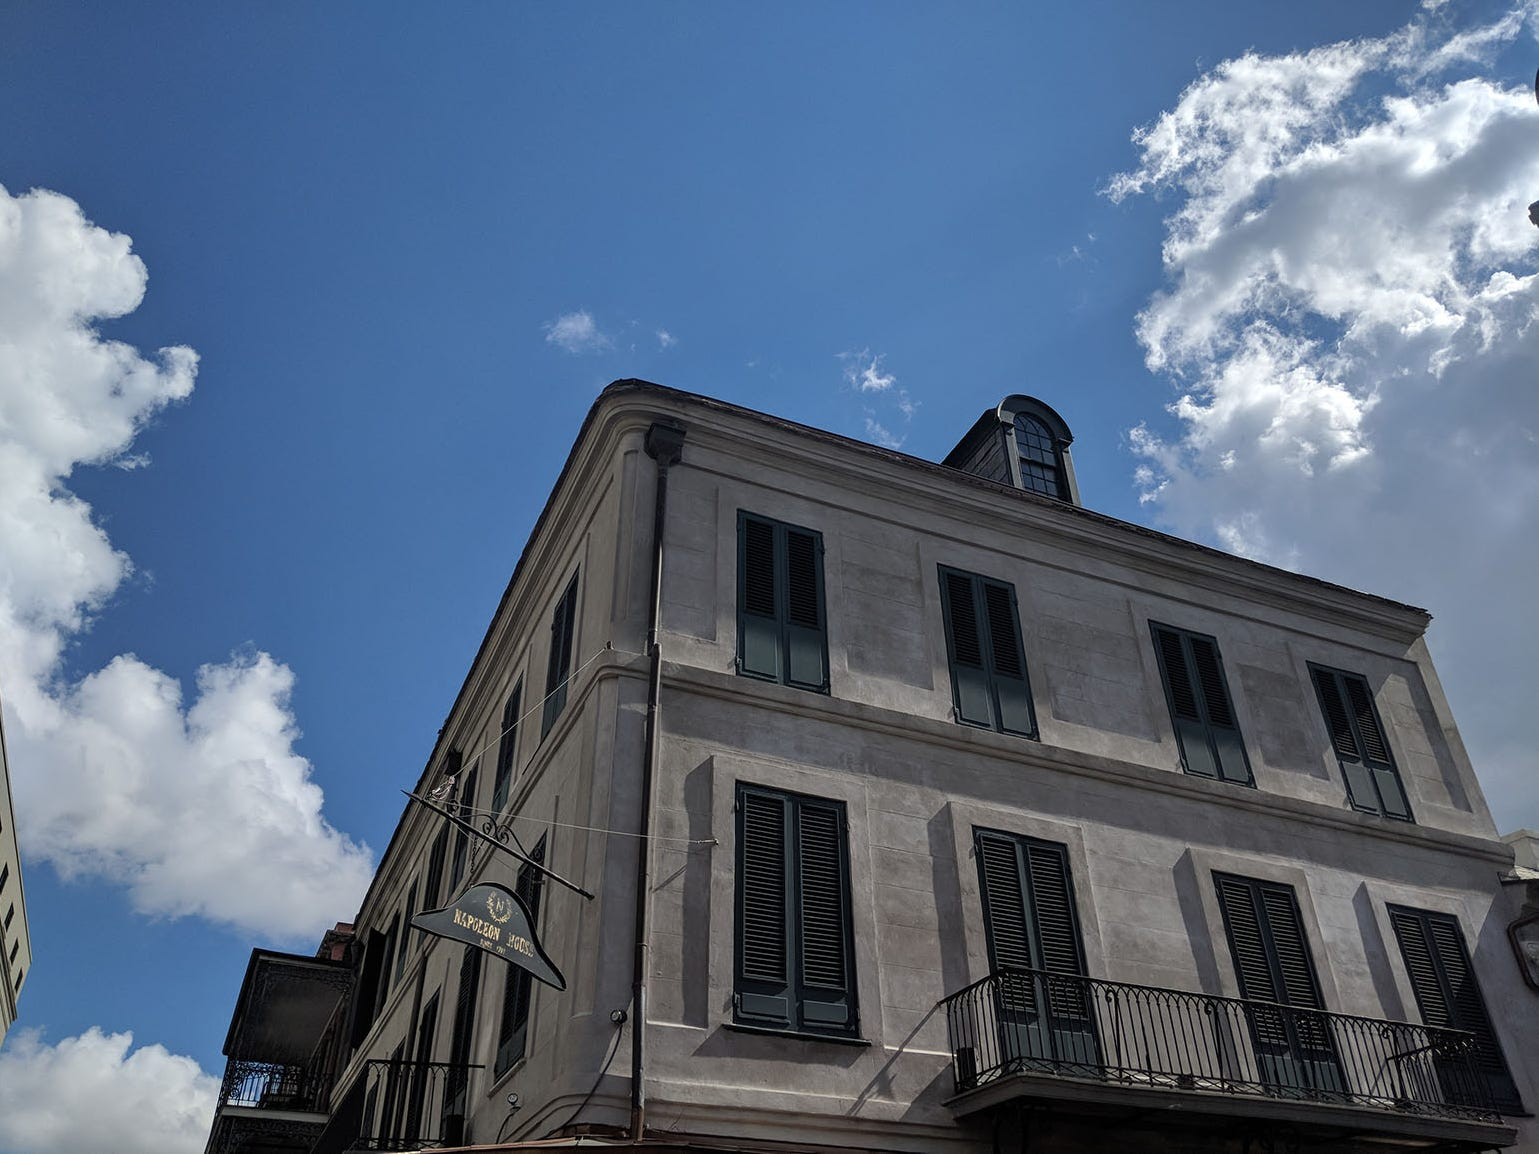 As one of nine National Historic Landmarks in the French Quarter, the Napoleon House has undergone its fair share of renovations, but it retains the charm that has endeared people to the building since 1815.